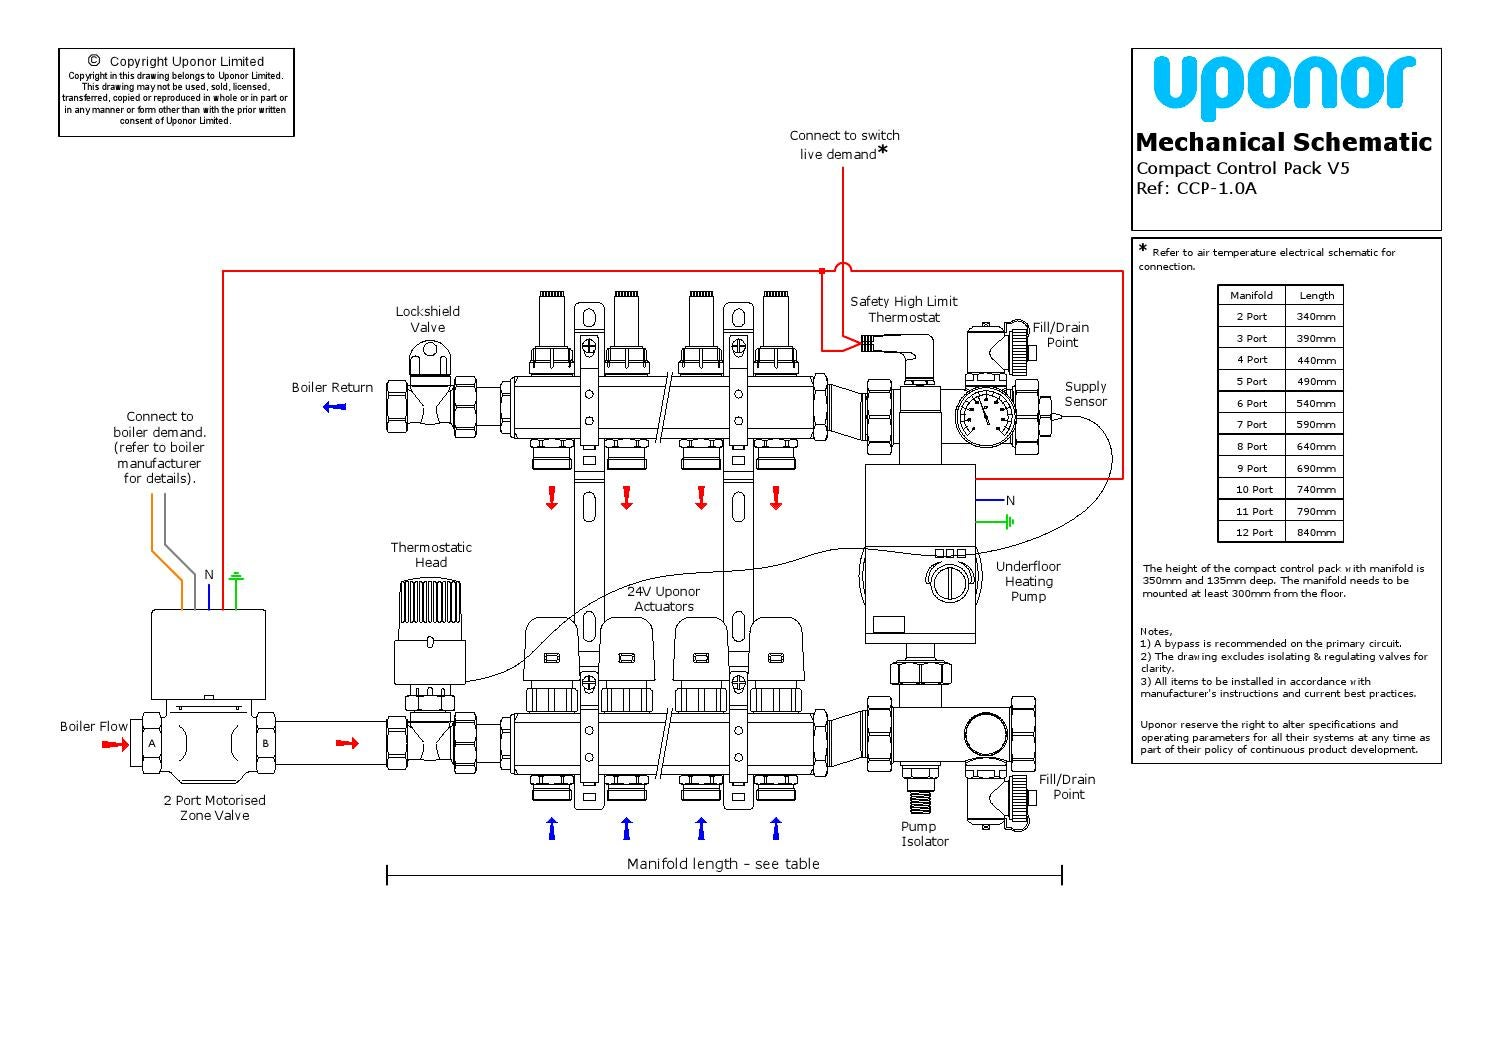 Uponor Underfloor Heating Wiring Diagrams - Somurich.com on motor schematics, electrical schematics, engineering schematics, electronics schematics, transformer schematics, ford diagrams schematics, computer schematics, ignition schematics, plumbing schematics, ductwork schematics, design schematics, generator schematics, circuit schematics, engine schematics, wire schematics, amplifier schematics, piping schematics, tube amp schematics, ecu schematics, transmission schematics,